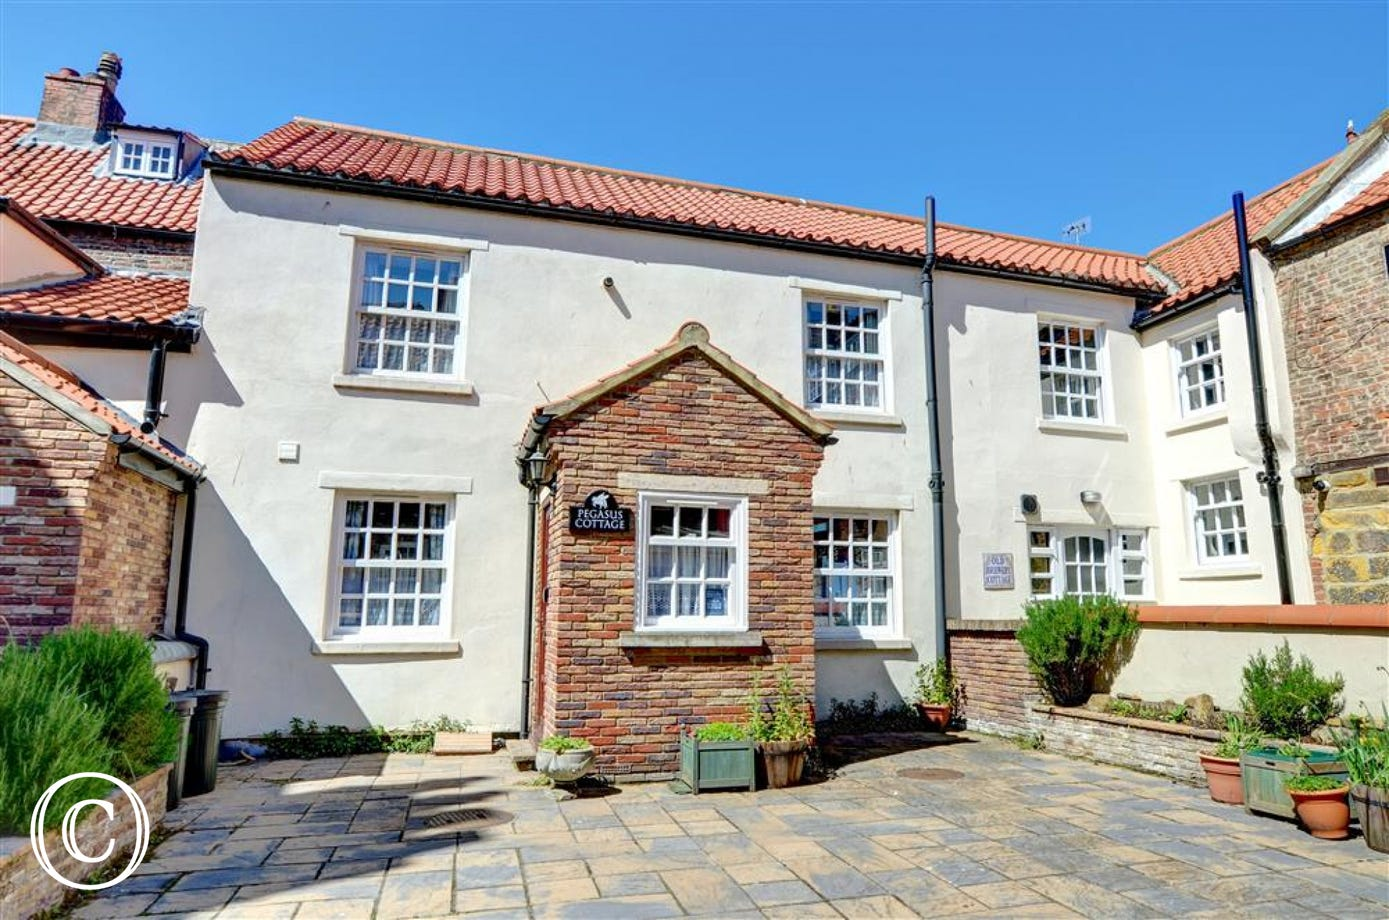 Exterior view of Pegasus Cottage which is located in White Horse Yard.